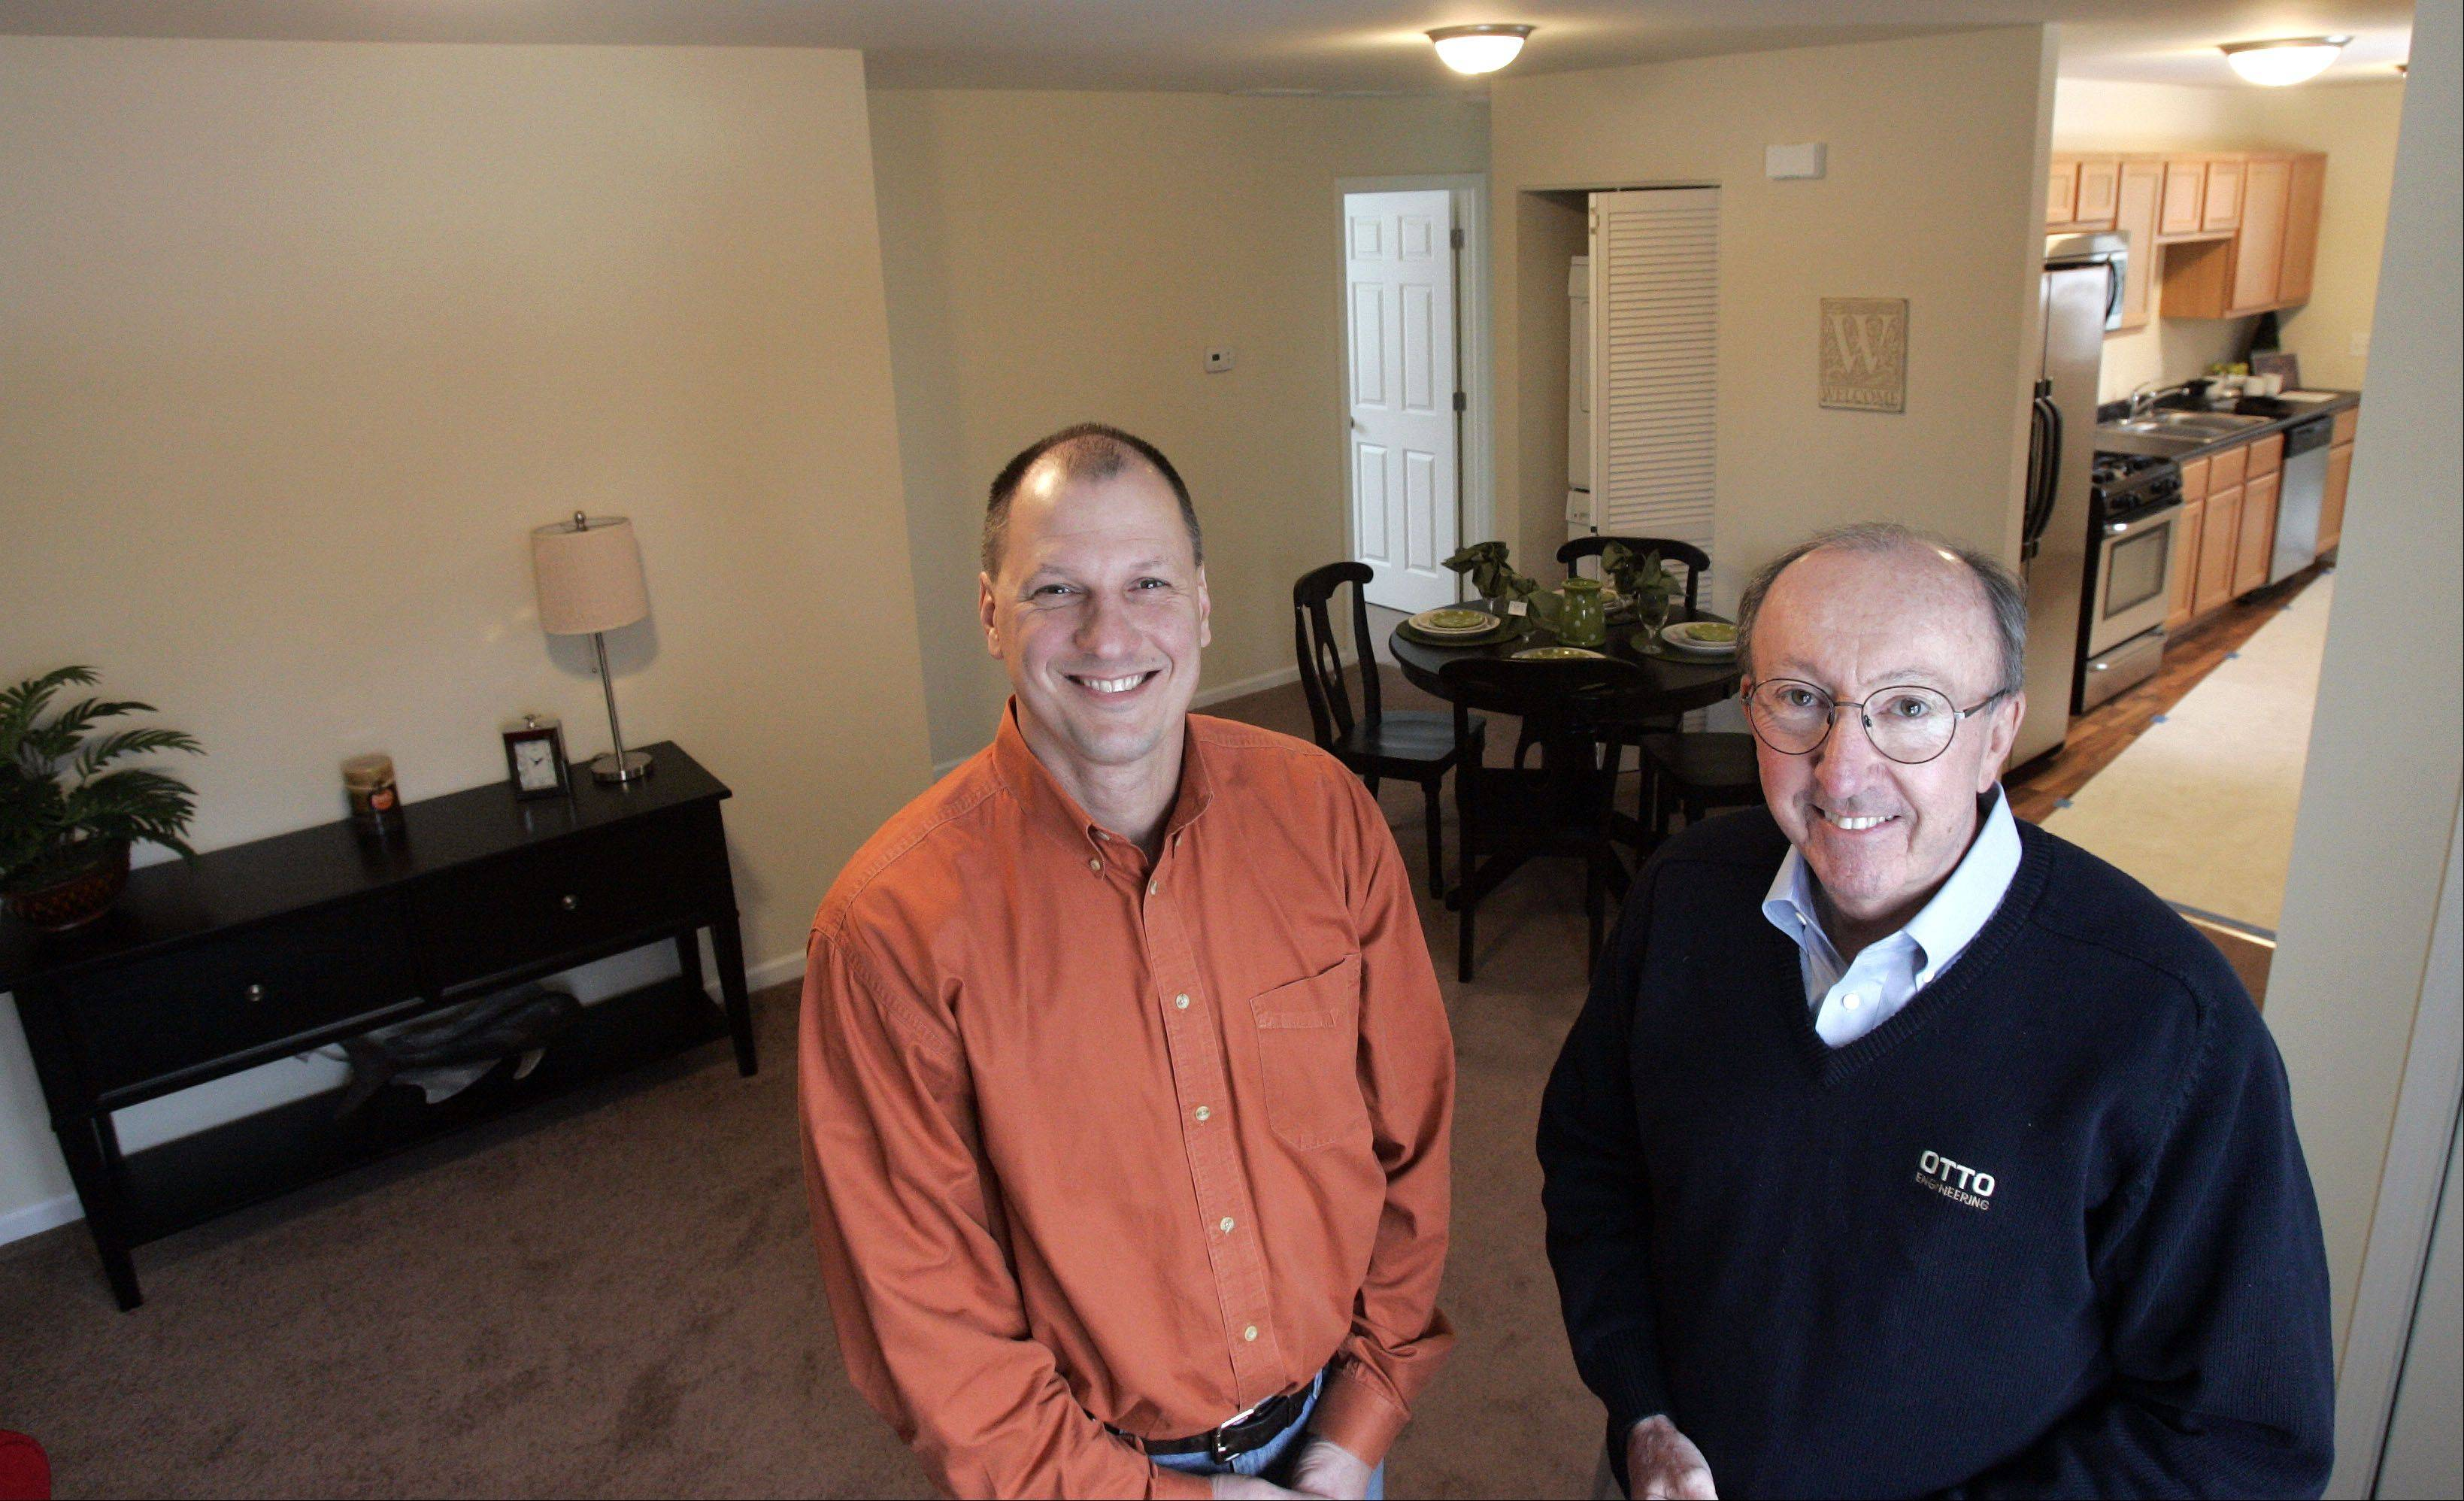 Facilities manager Jerry Skowronski, left, and Tom Roeser of Homes by OTTO are successfully rehabbing a neighborhood in Carpentersville.